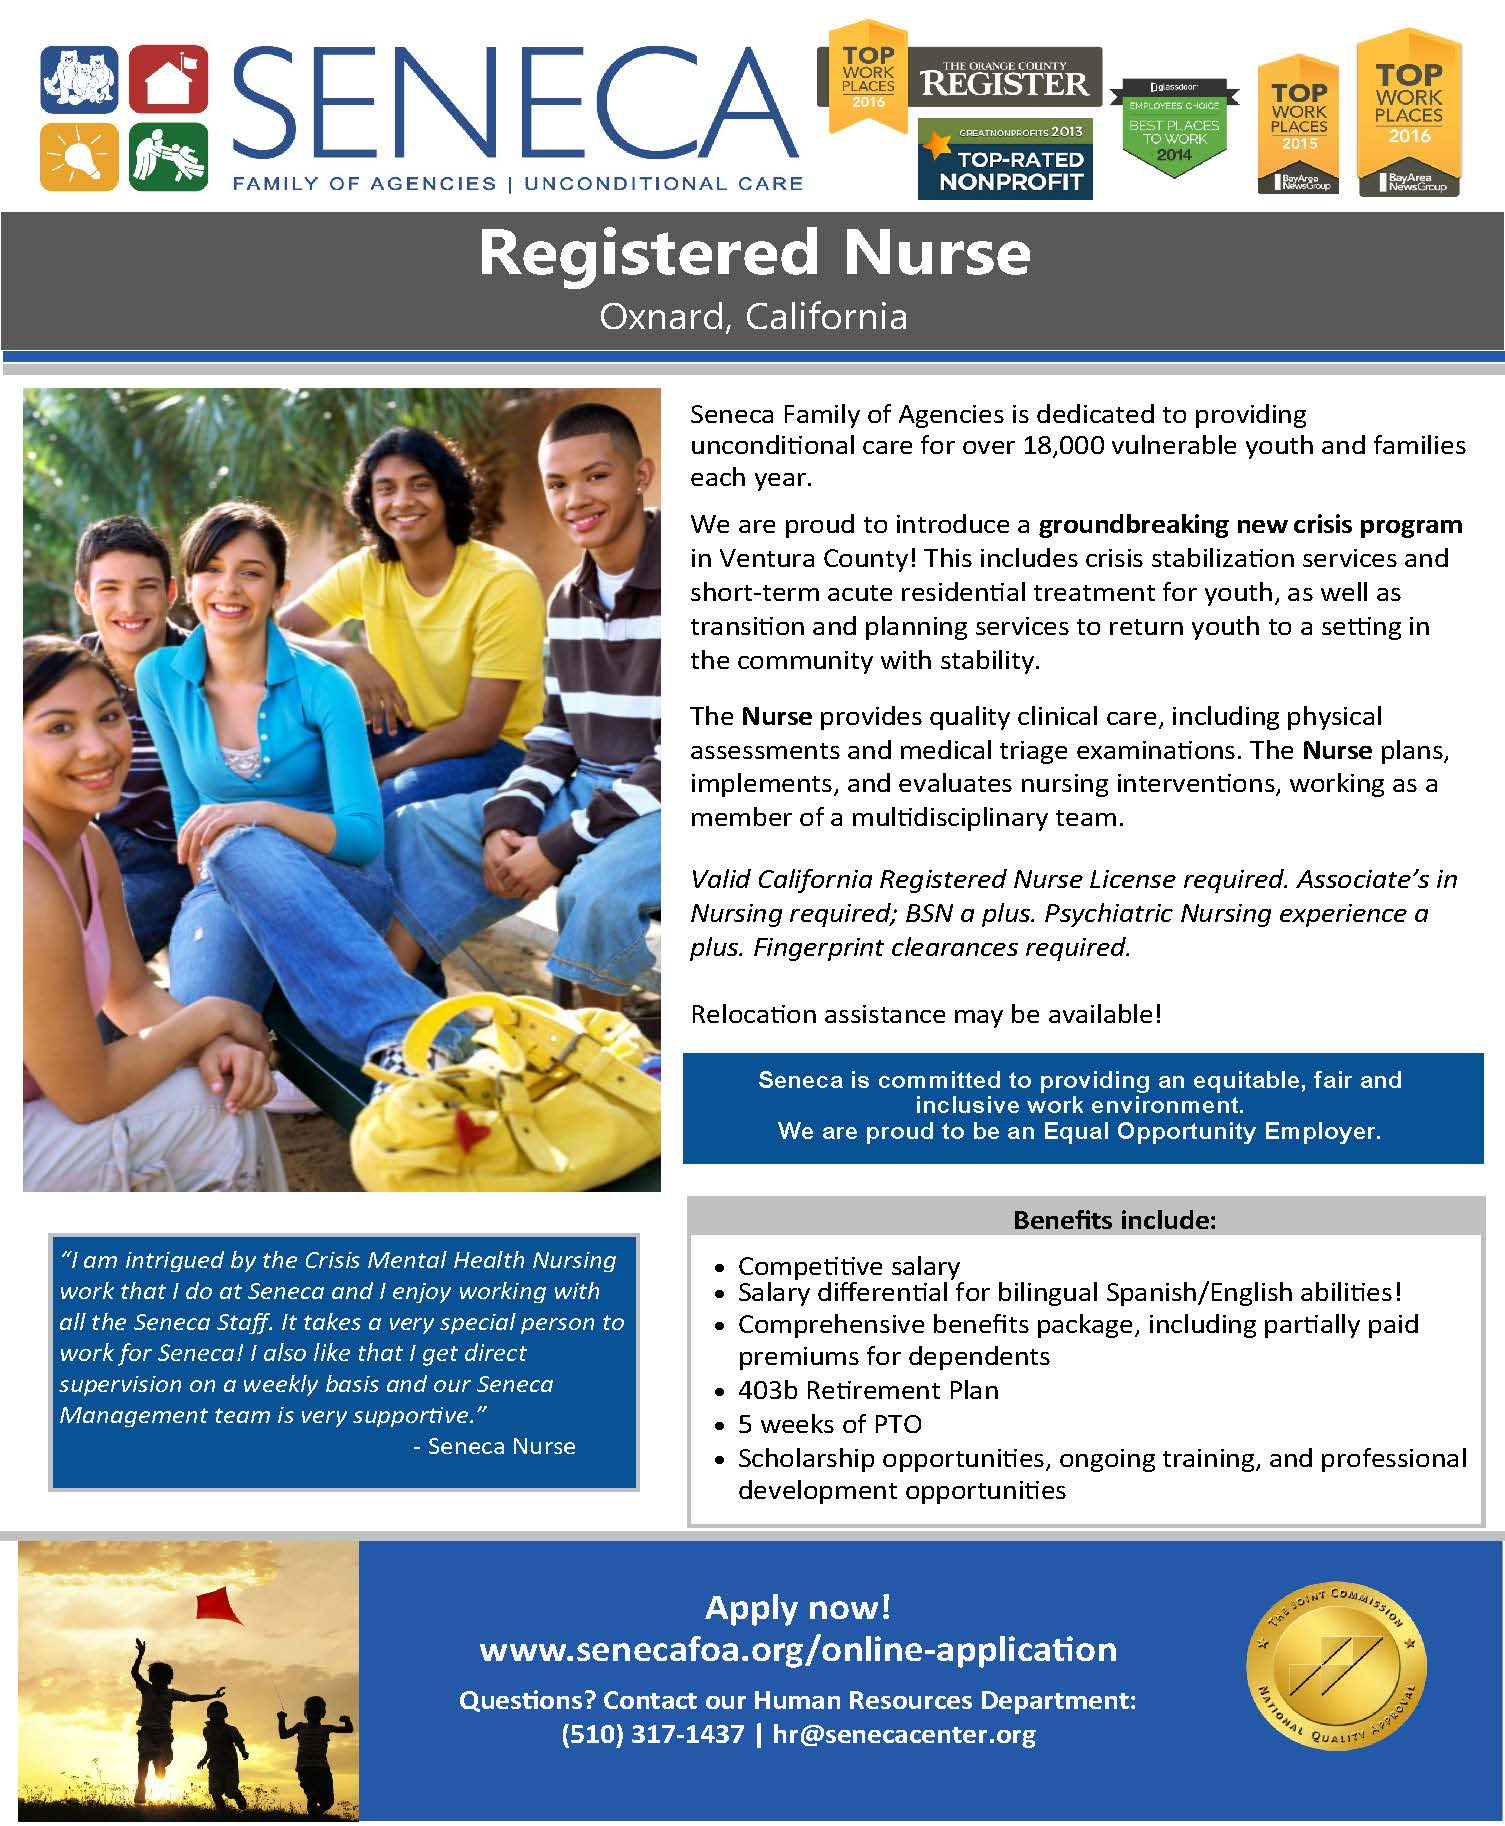 SENECA Registered Nurse Position